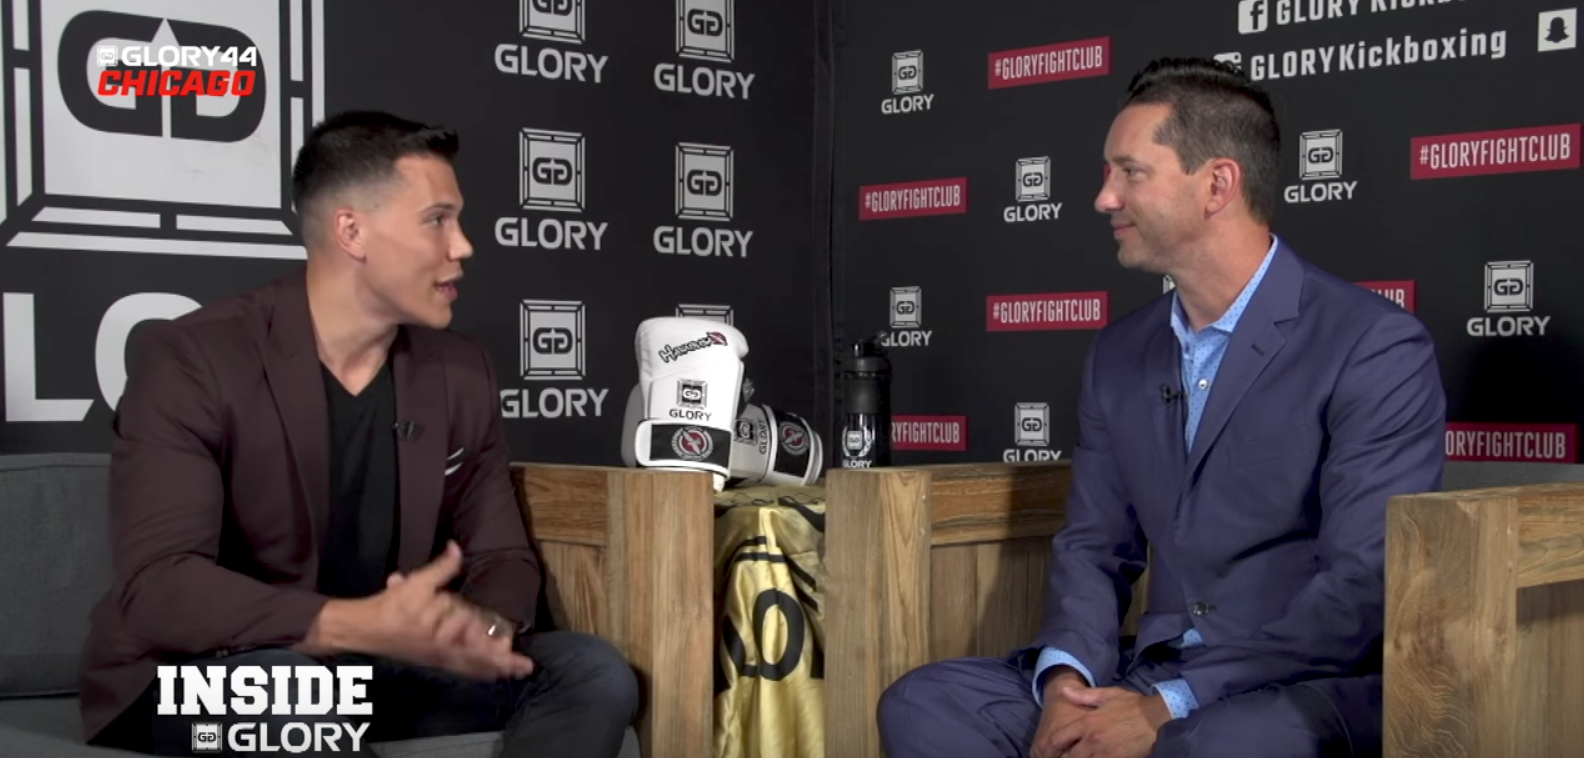 Inside GLORY - Todd and Joe break down Doumbé vs. Groenhart